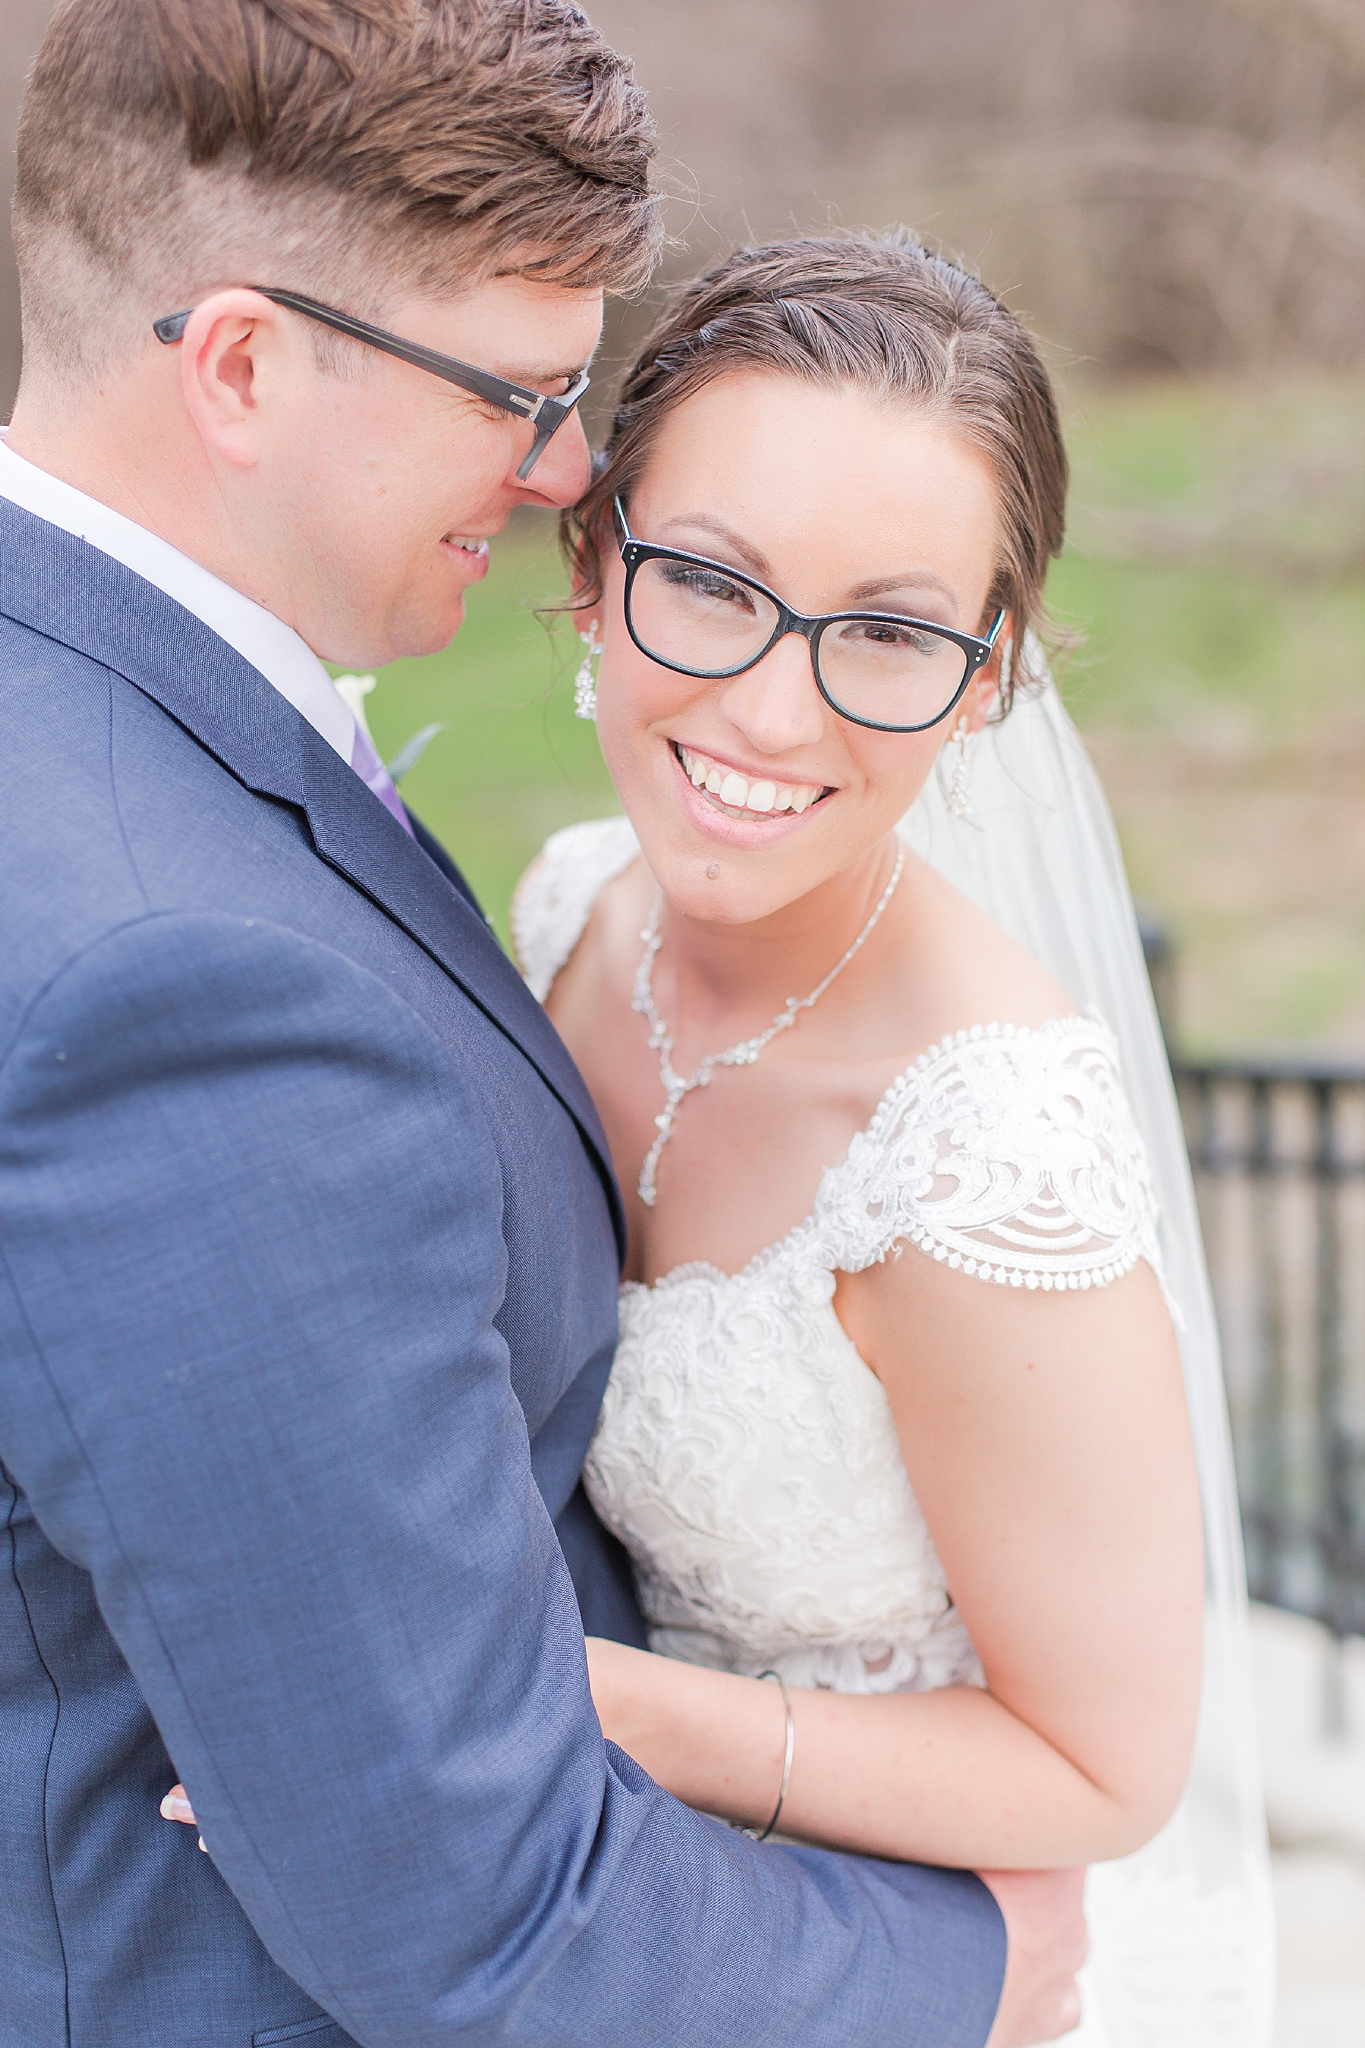 joyful-romantic-modern-laid-back-wedding-photography-in-detroit-ann-arbor-northern-mi-and-chicago-by-courtney-carolyn-photography_0059.jpg